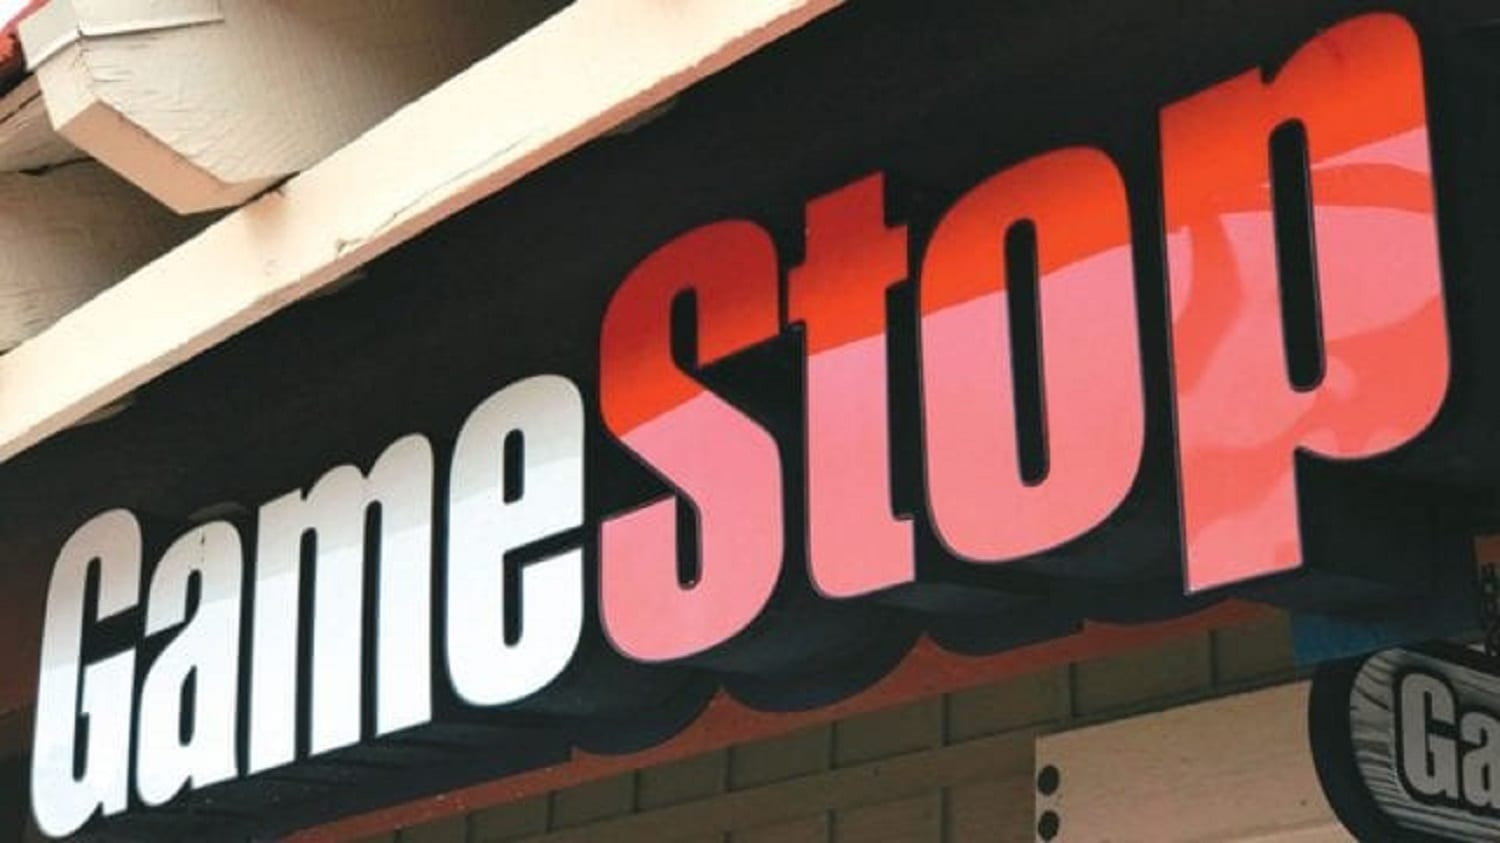 gamestop-foto-Reuters.jpg